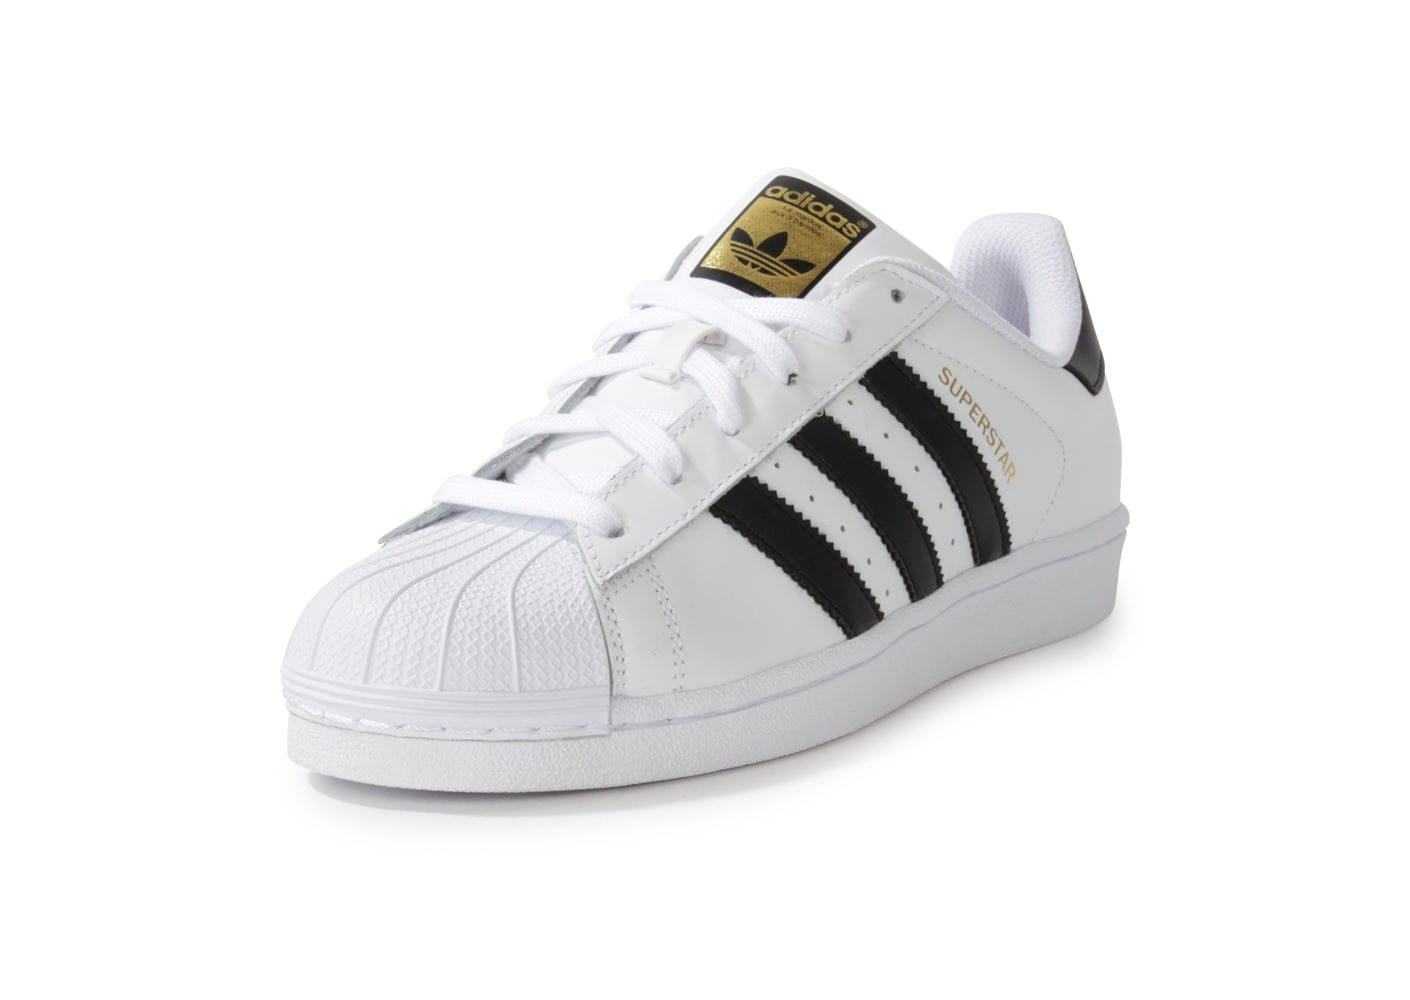 adidas superstar foundation blanc noir chaussures homme. Black Bedroom Furniture Sets. Home Design Ideas